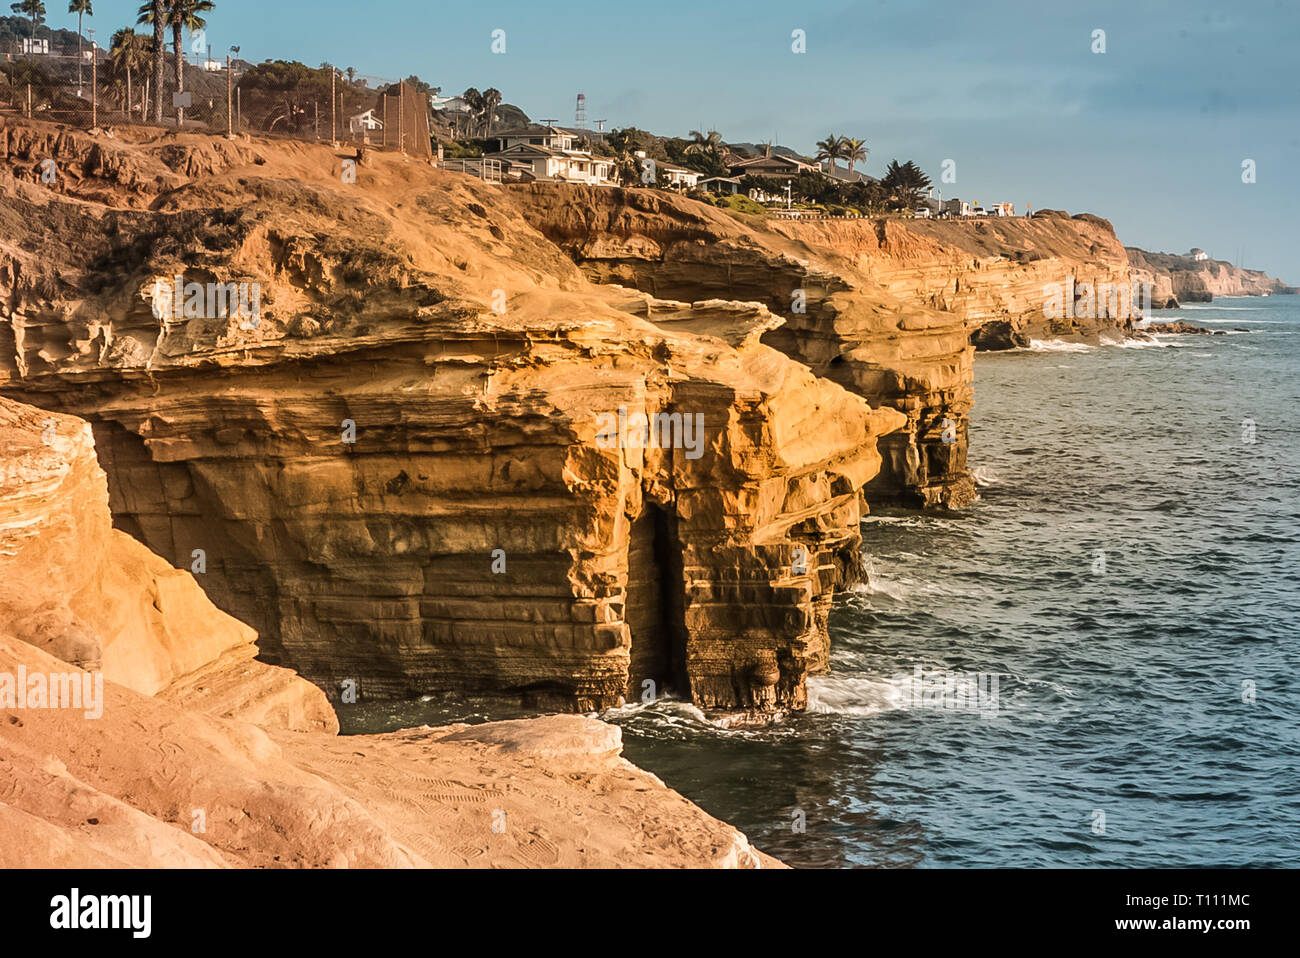 Views of the Pacific Ocean off the California Coast at Sunset Cliffs Natural Park near La Jolla Beach and San Diego. Stock Photo